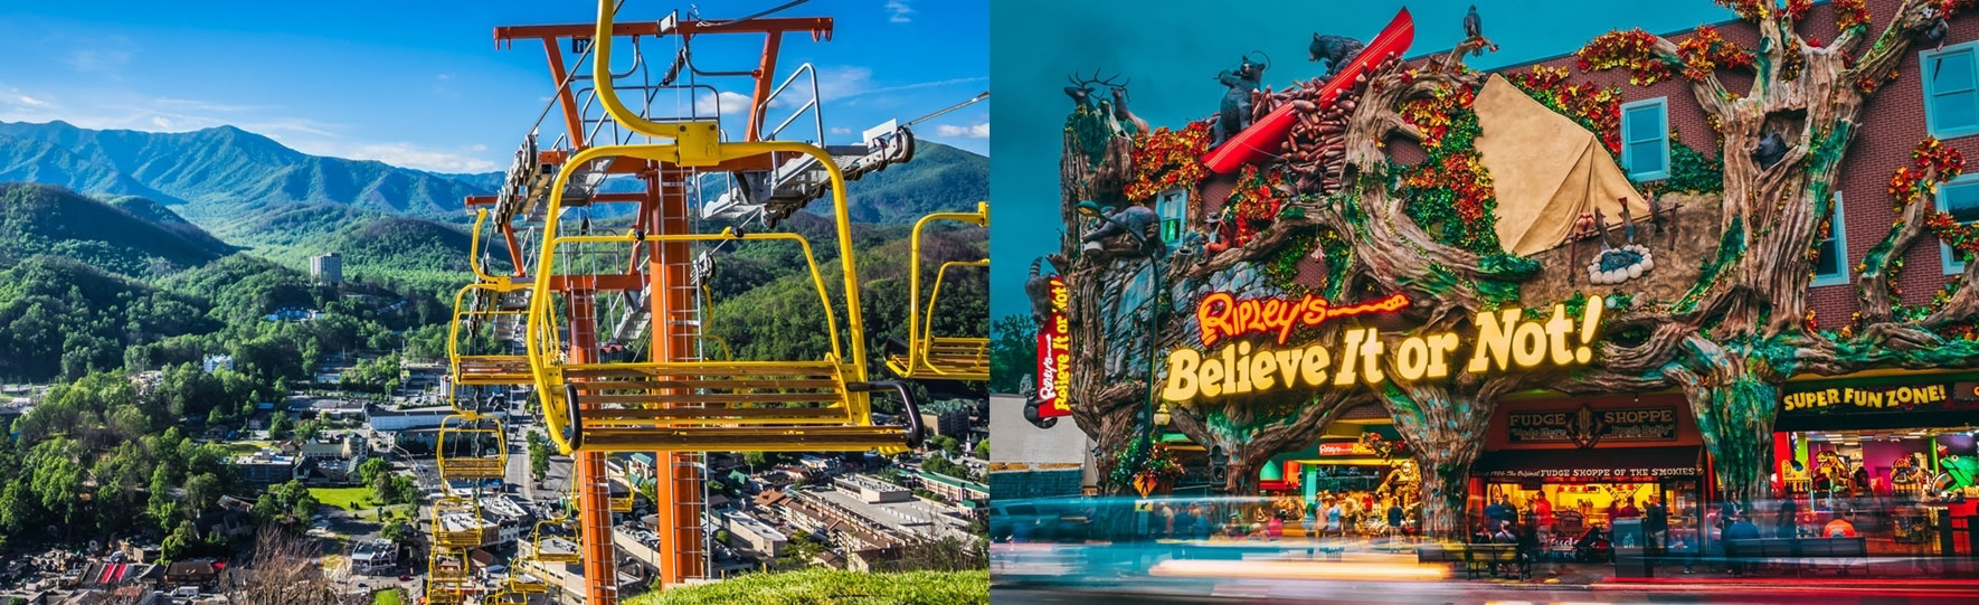 Picture of SkyLift Park + Ripley's Believe It or Not Combo